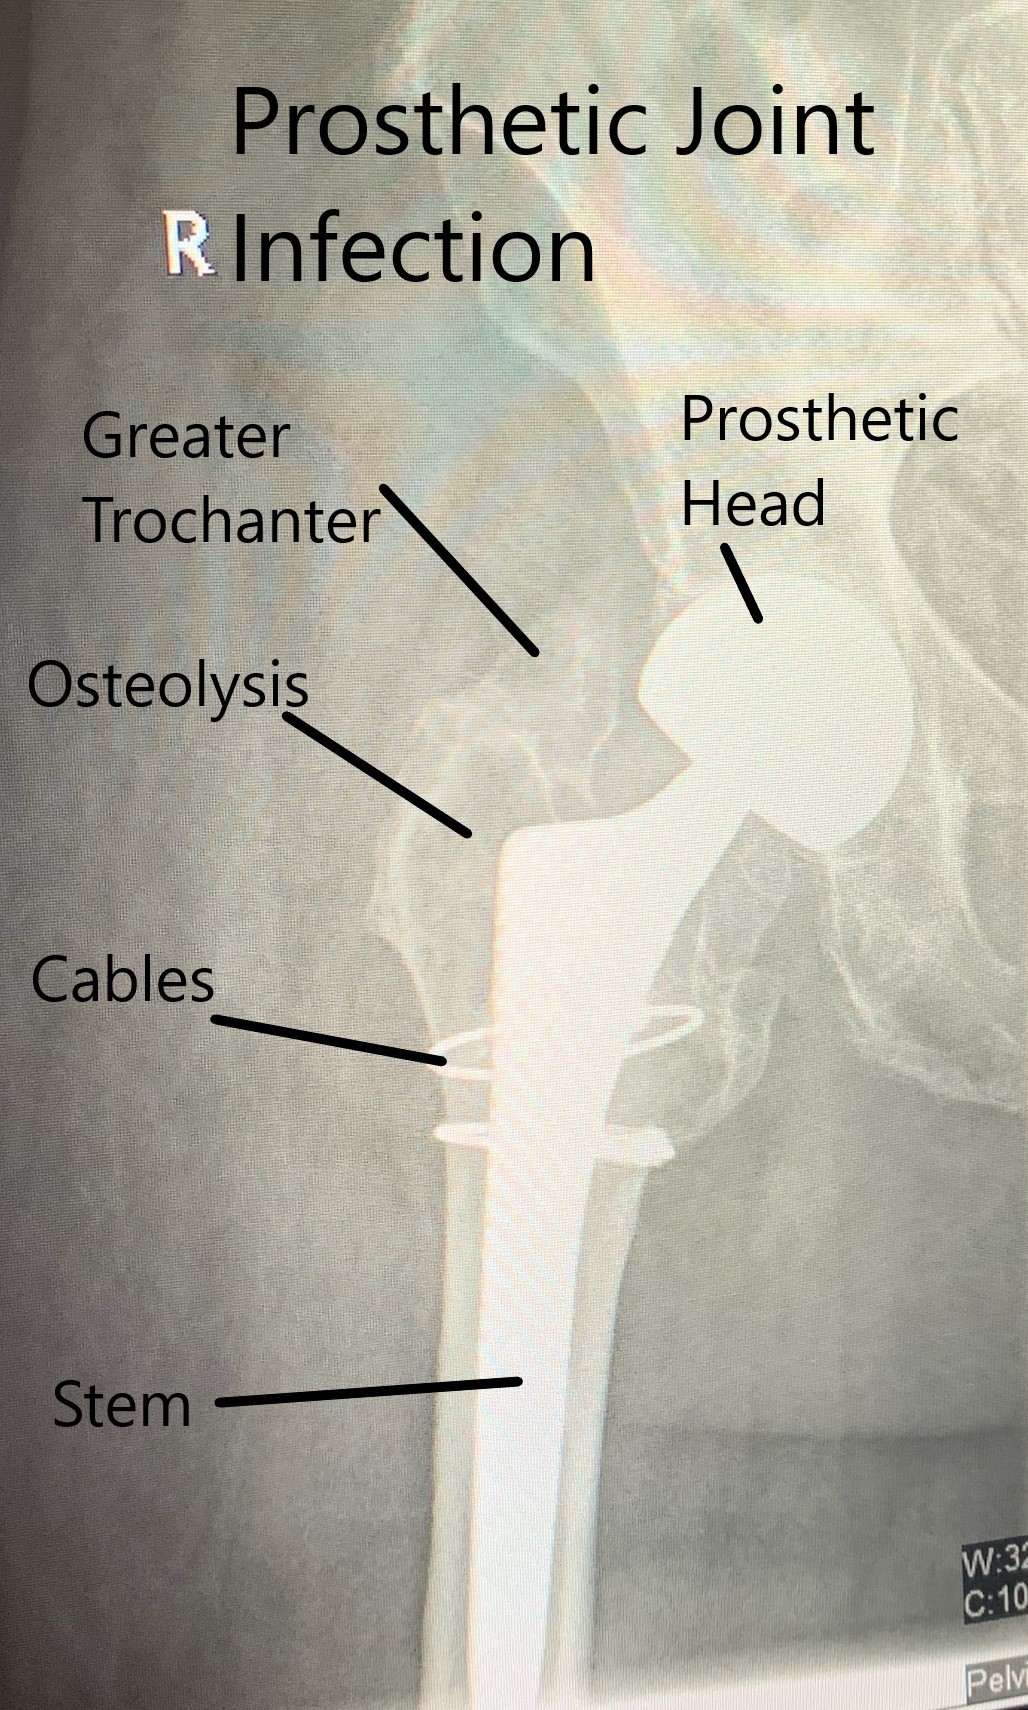 X Ray showing prosthetic joint infection